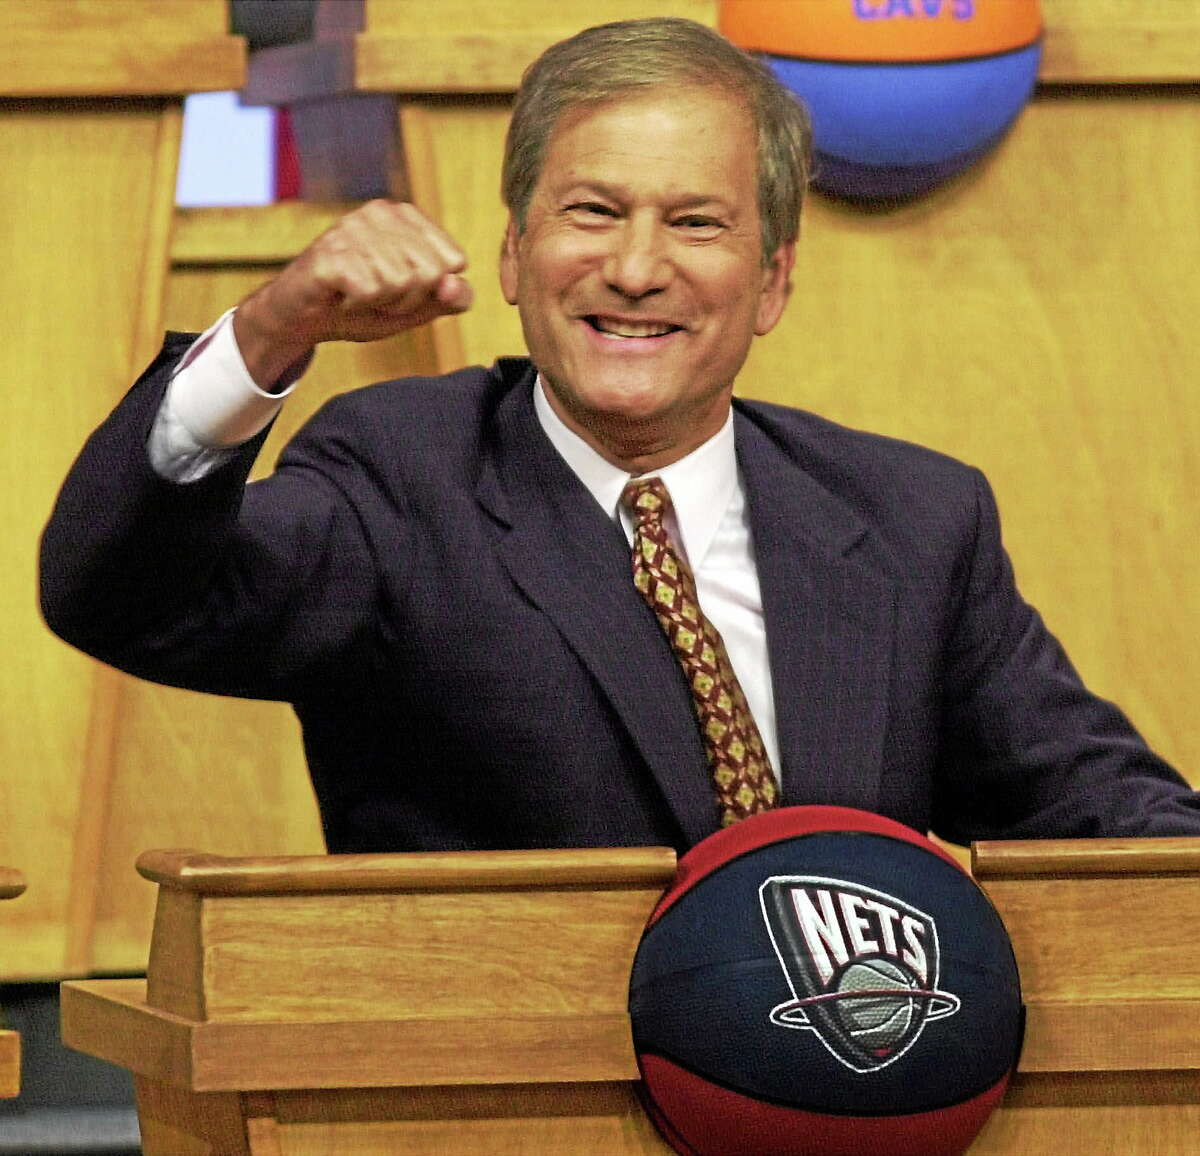 In this May 21, 2000 photo, New Jersey Nets owner Lewis Katz reacts as the Nets received the first pick in the NBA draft at the NBA Draft Lottery in Secaucus, N.J. The editor of The Philadelphia Inquirer says co-owner Lewis Katz is among the seven people killed in a plane crash in Massachusetts.